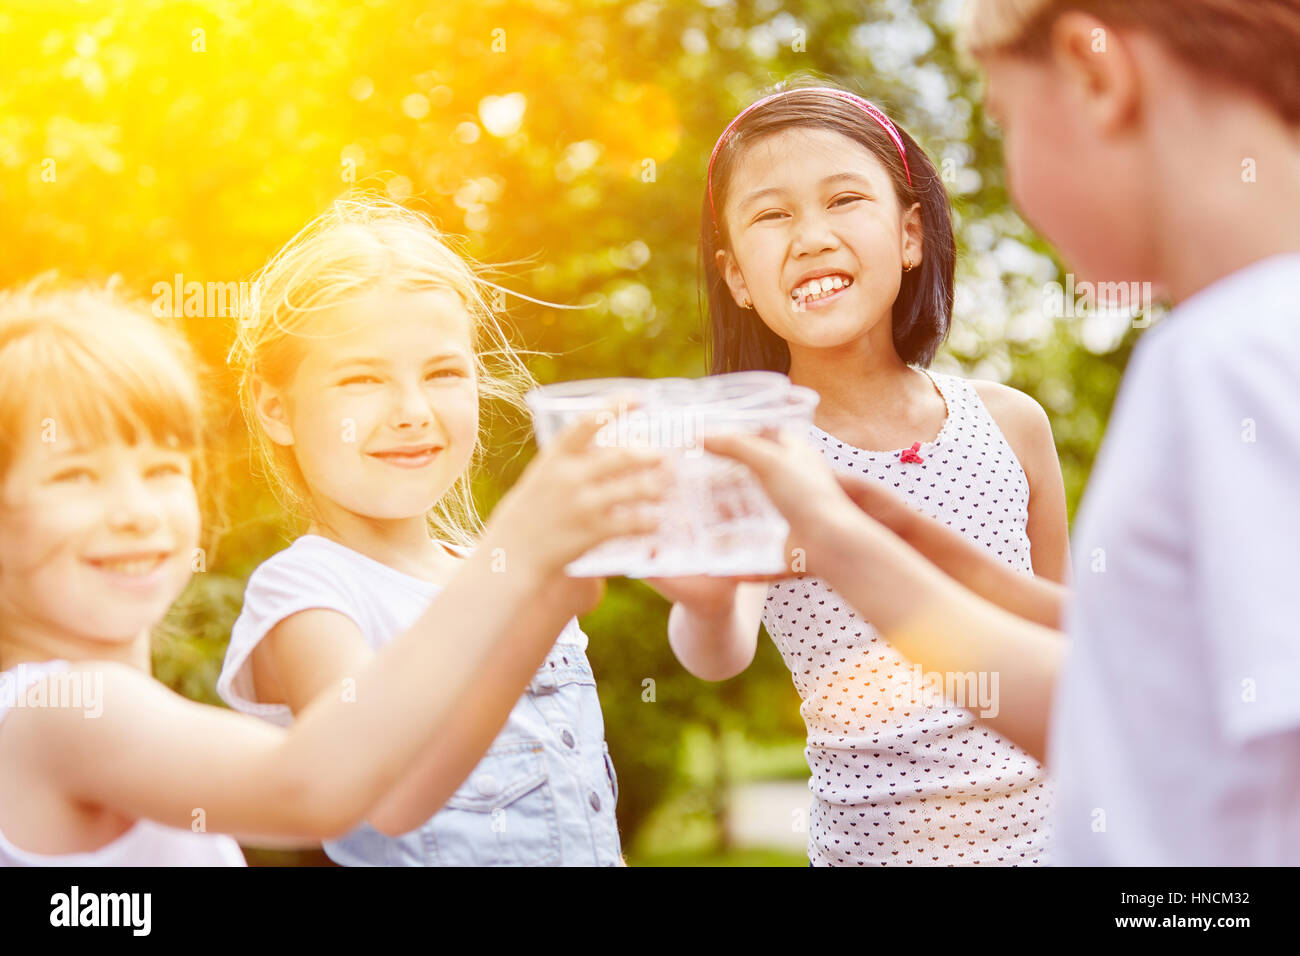 Group of girls drinking water in summer as friends at childrens birthday party - Stock Image